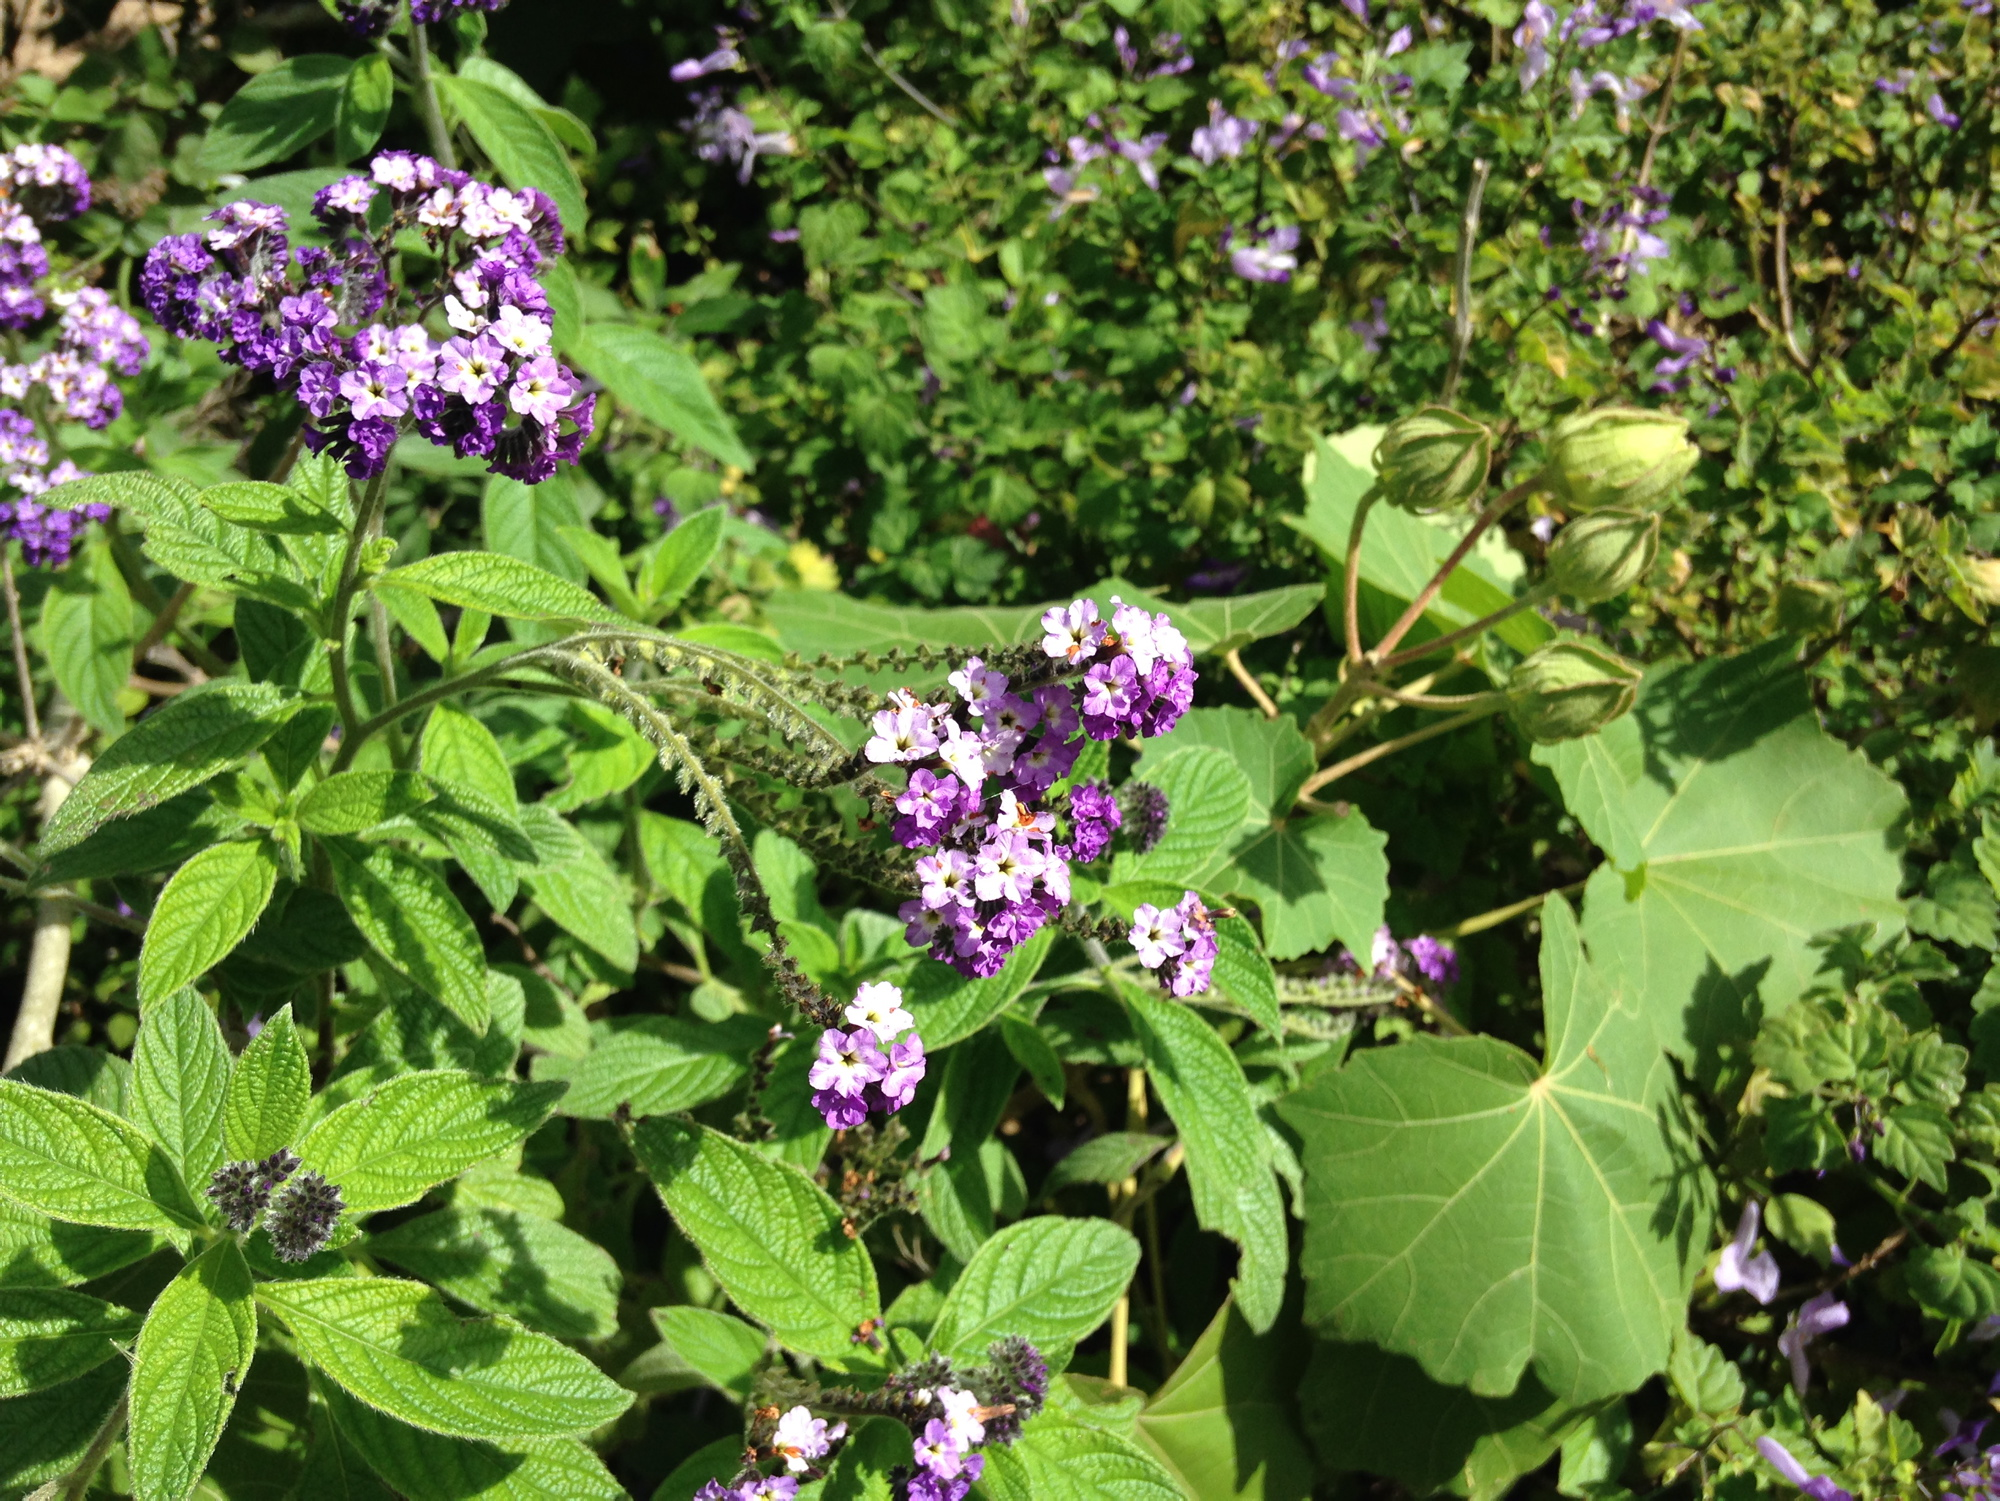 Variegated purple flowers against green foliage.